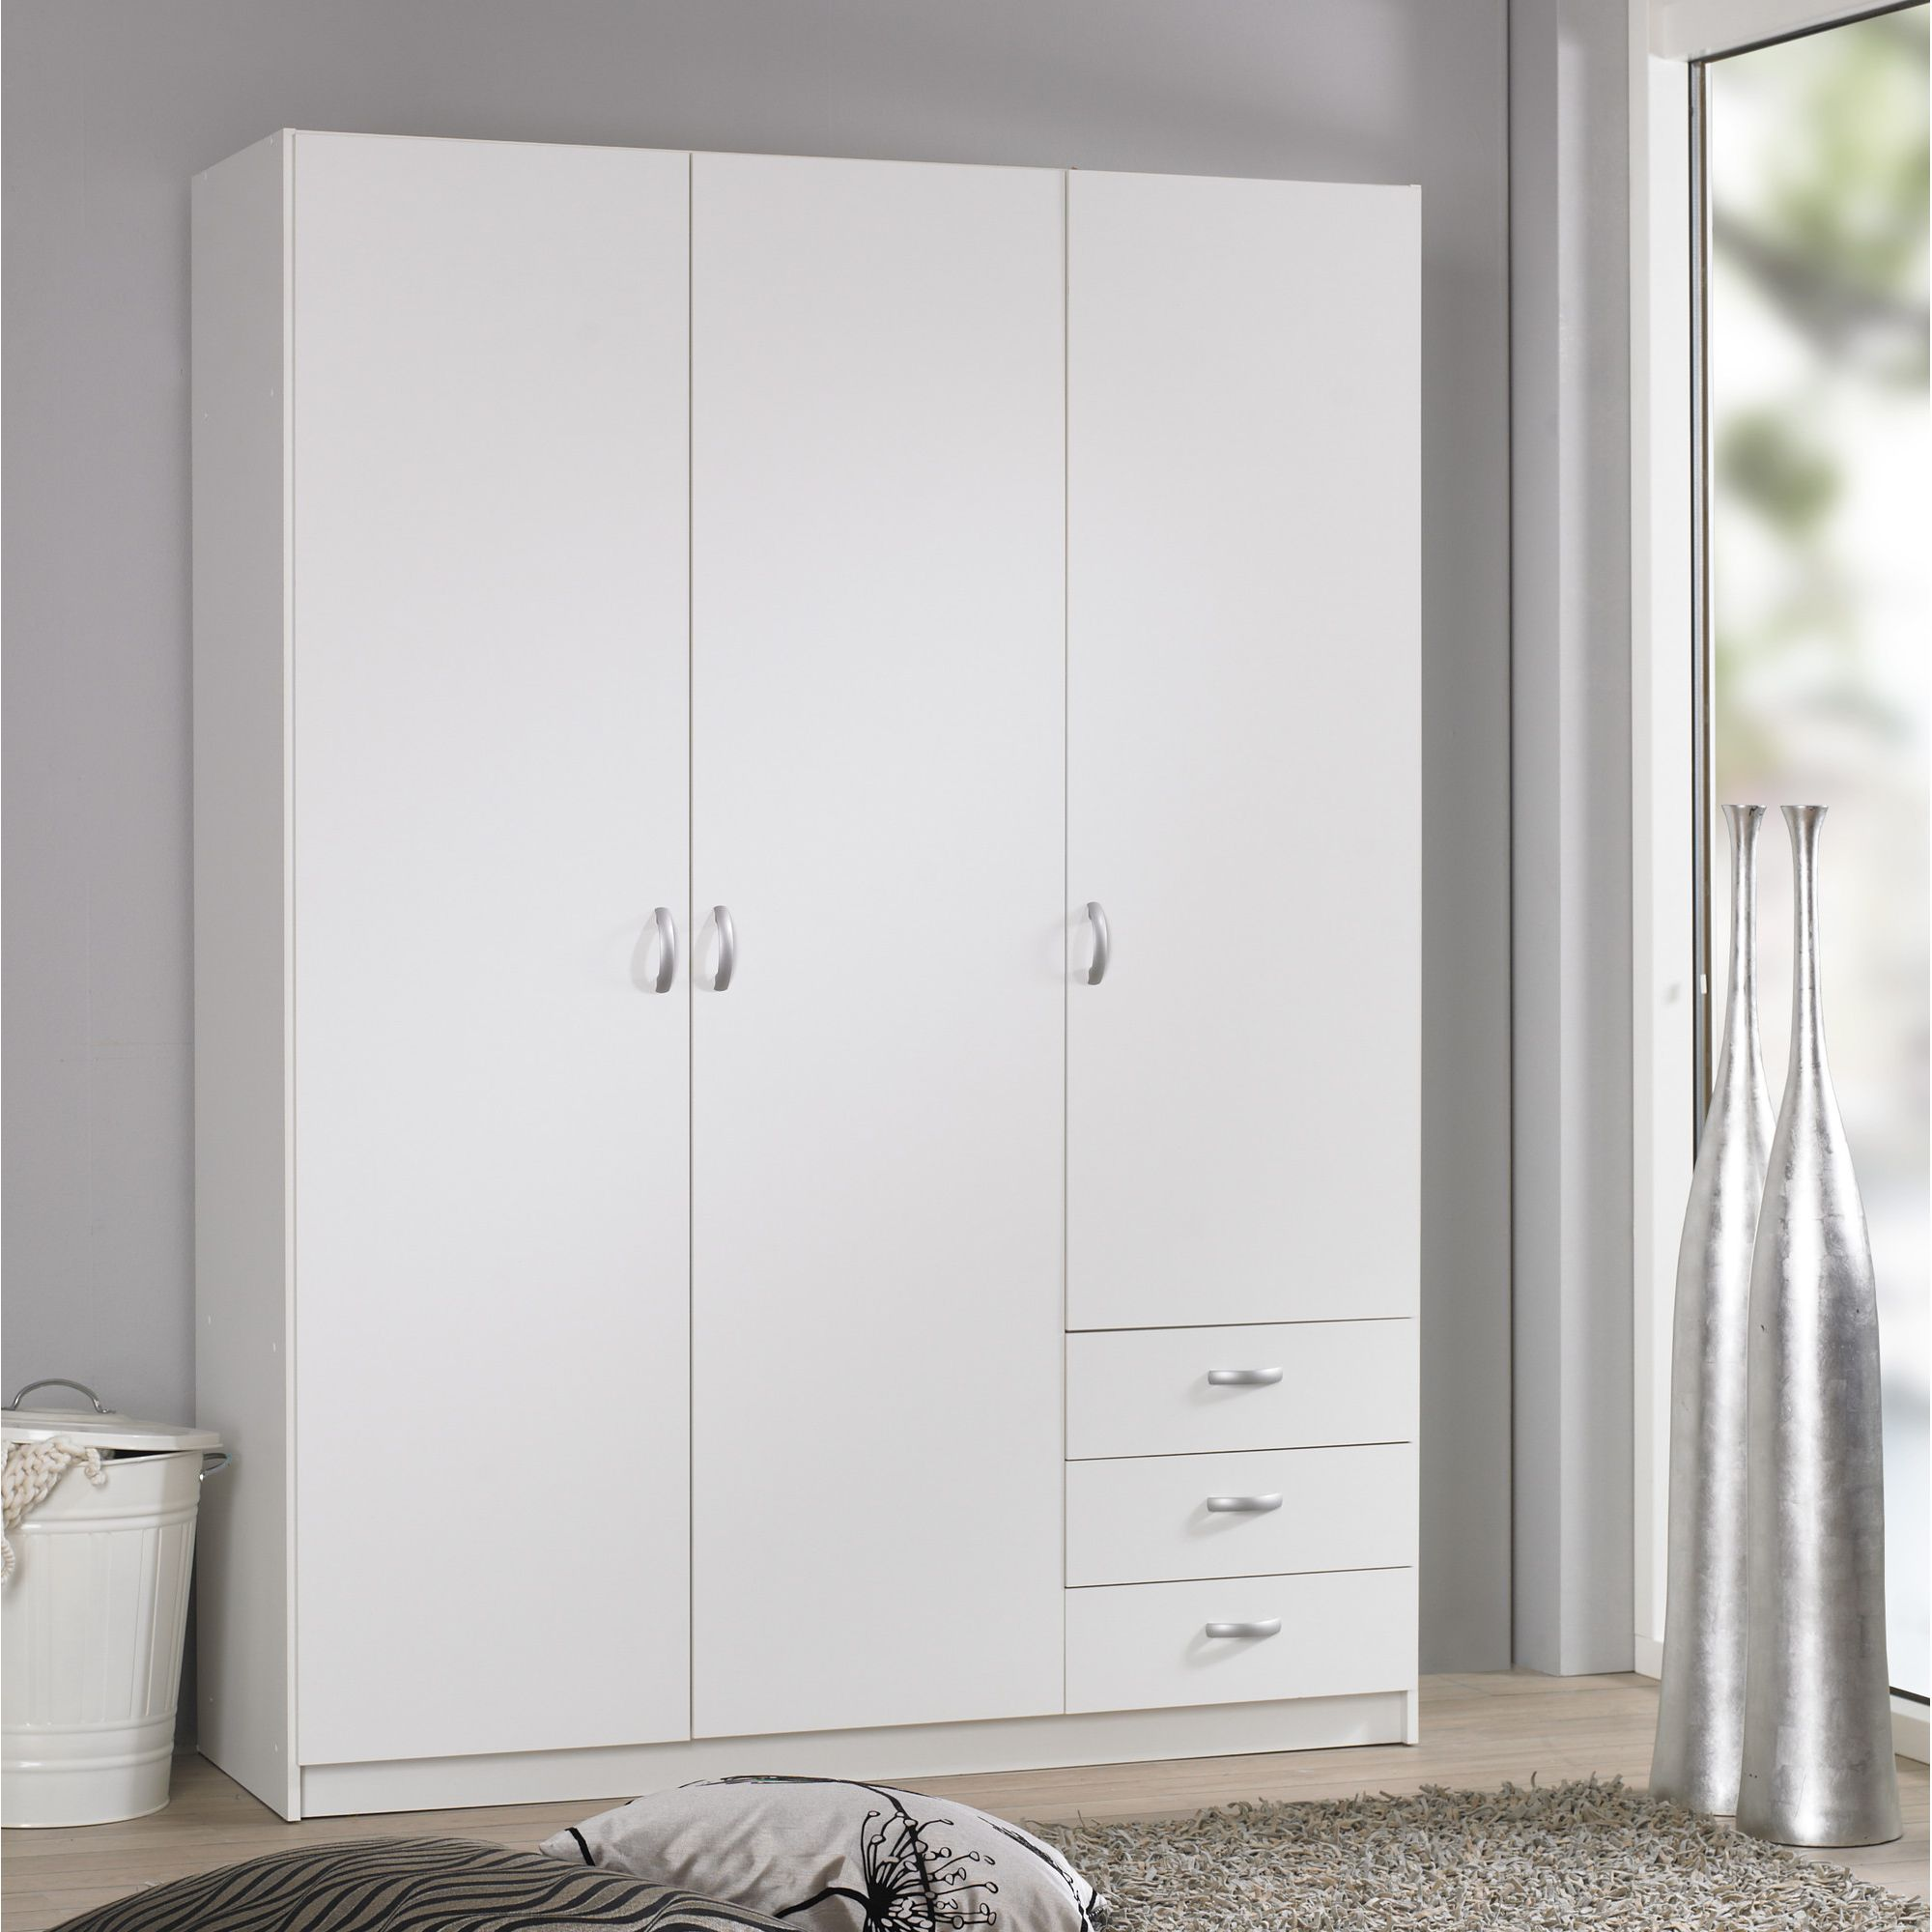 Tvilum Focus Three Drawer Wardrobe - White at Tesco Direct